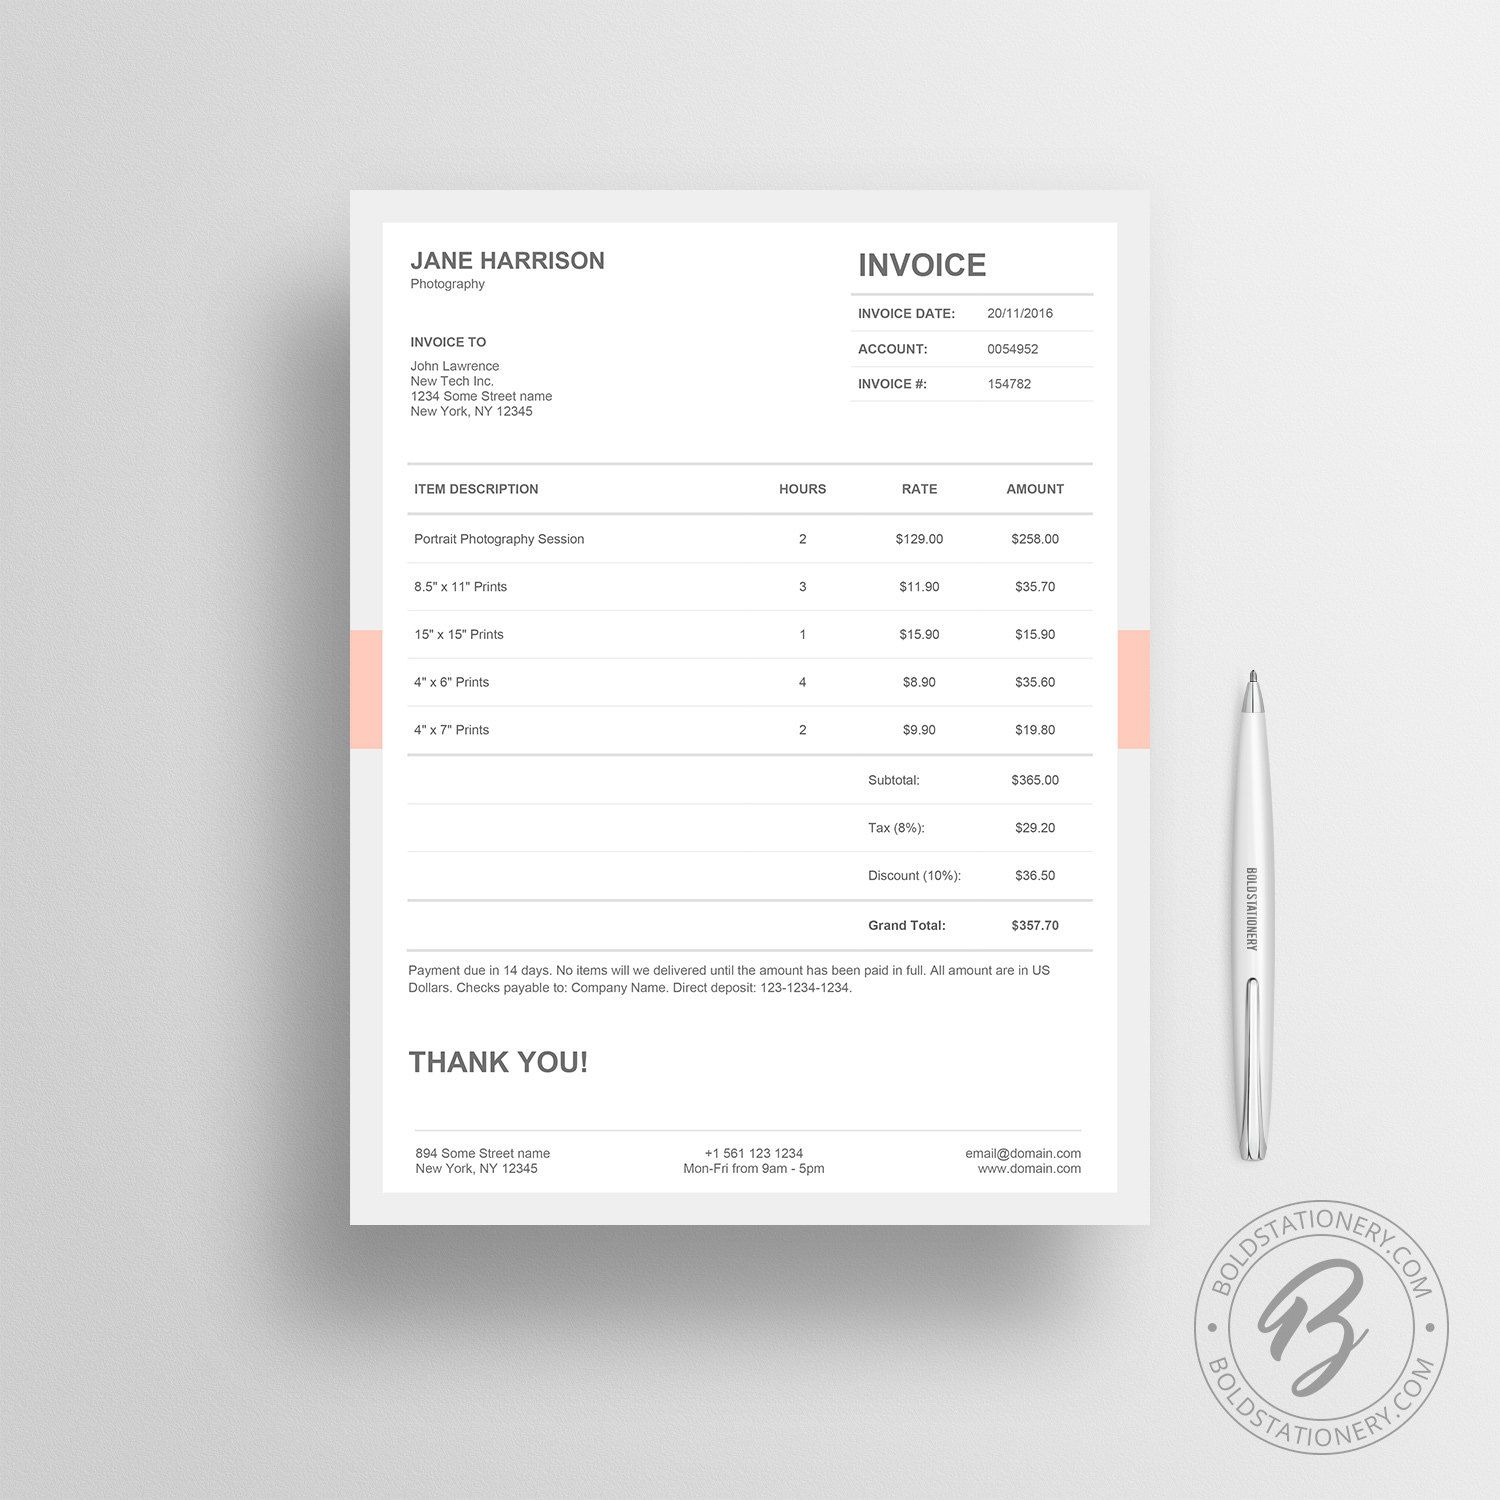 green background rent receipt microsoft word template invoice invoice template 05 receipt template invoice template for microsoft word estimate template